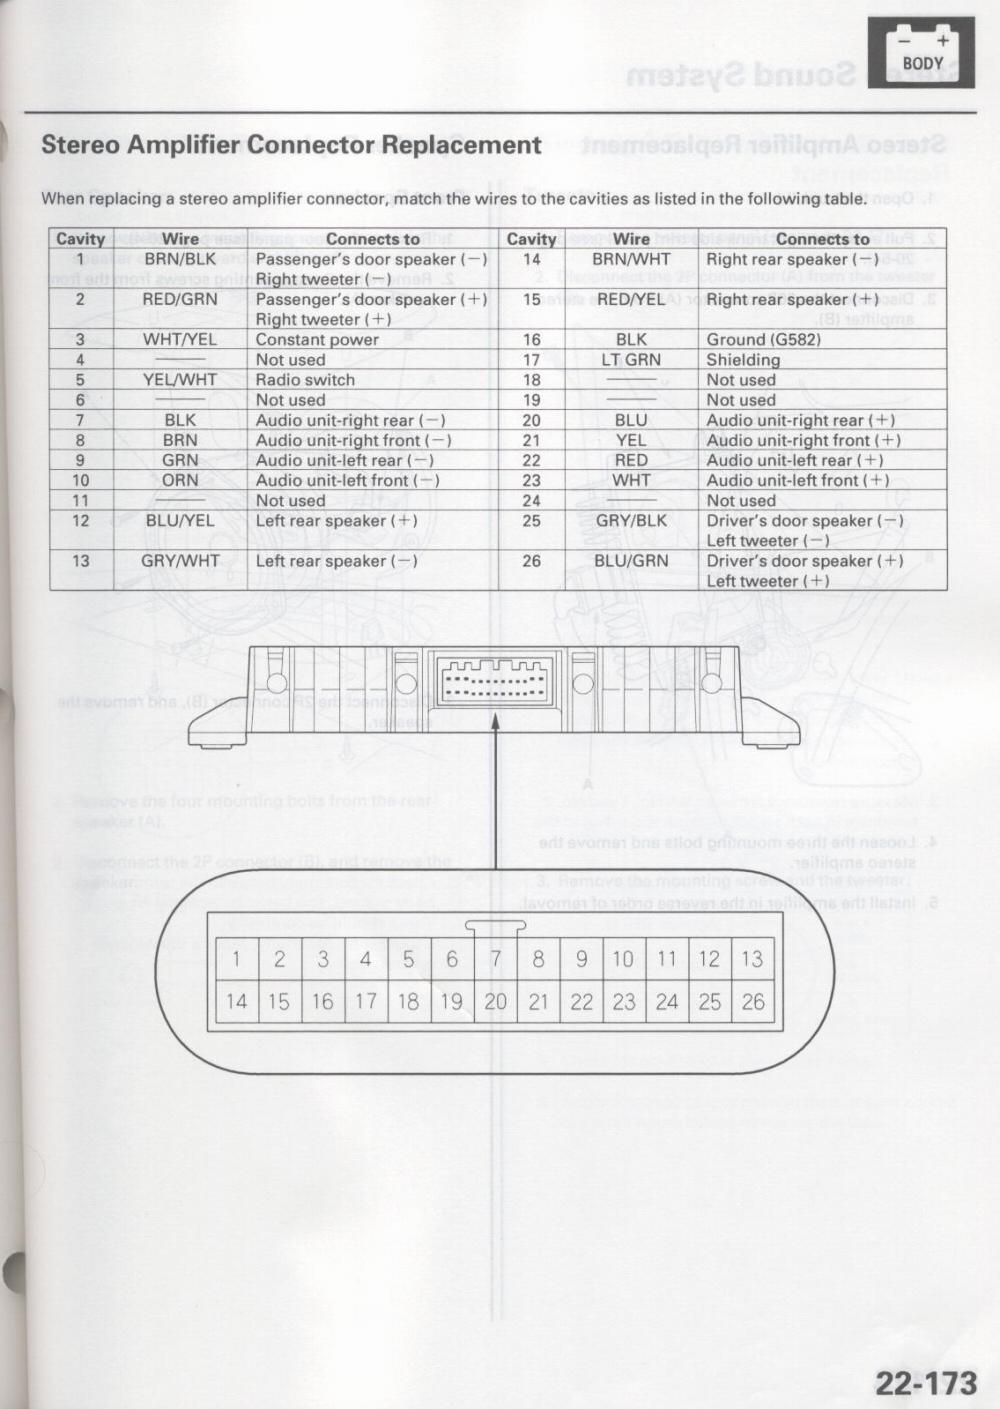 acura rsx bose amplifier wiring diagram bose amplifier wiring diagram